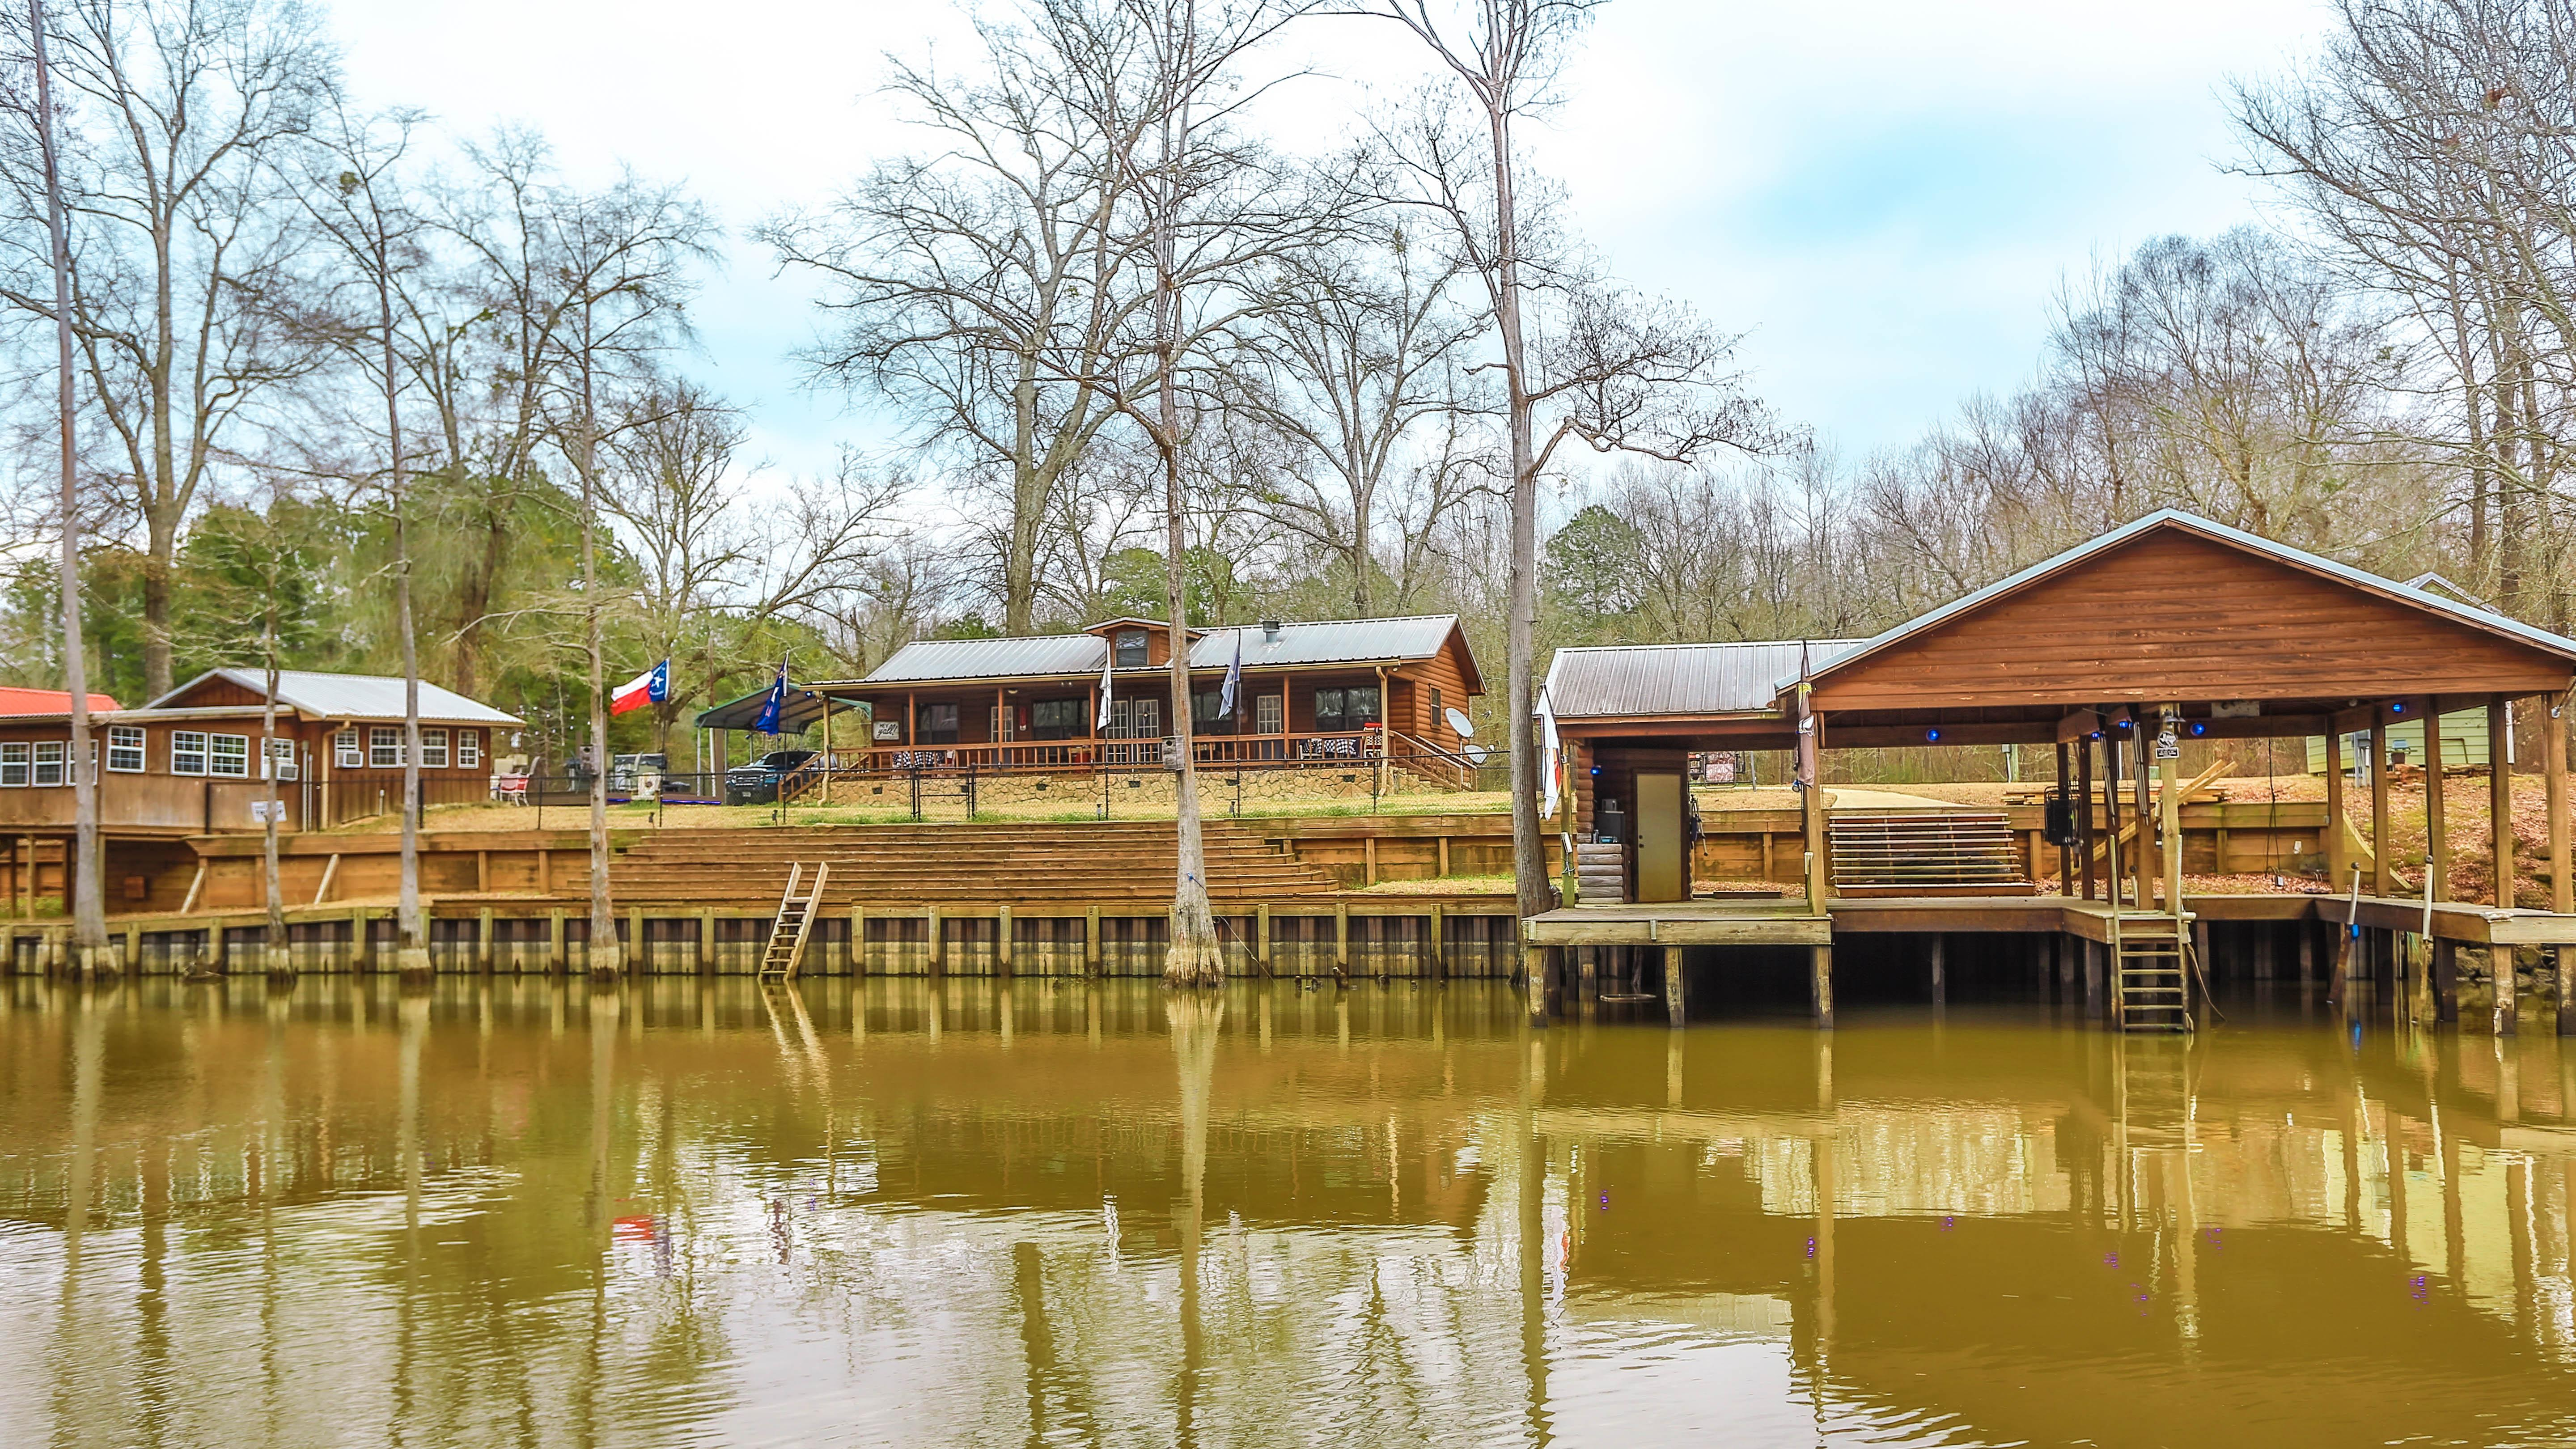 Property Image for 305 Pr 7220 Bayou River Run